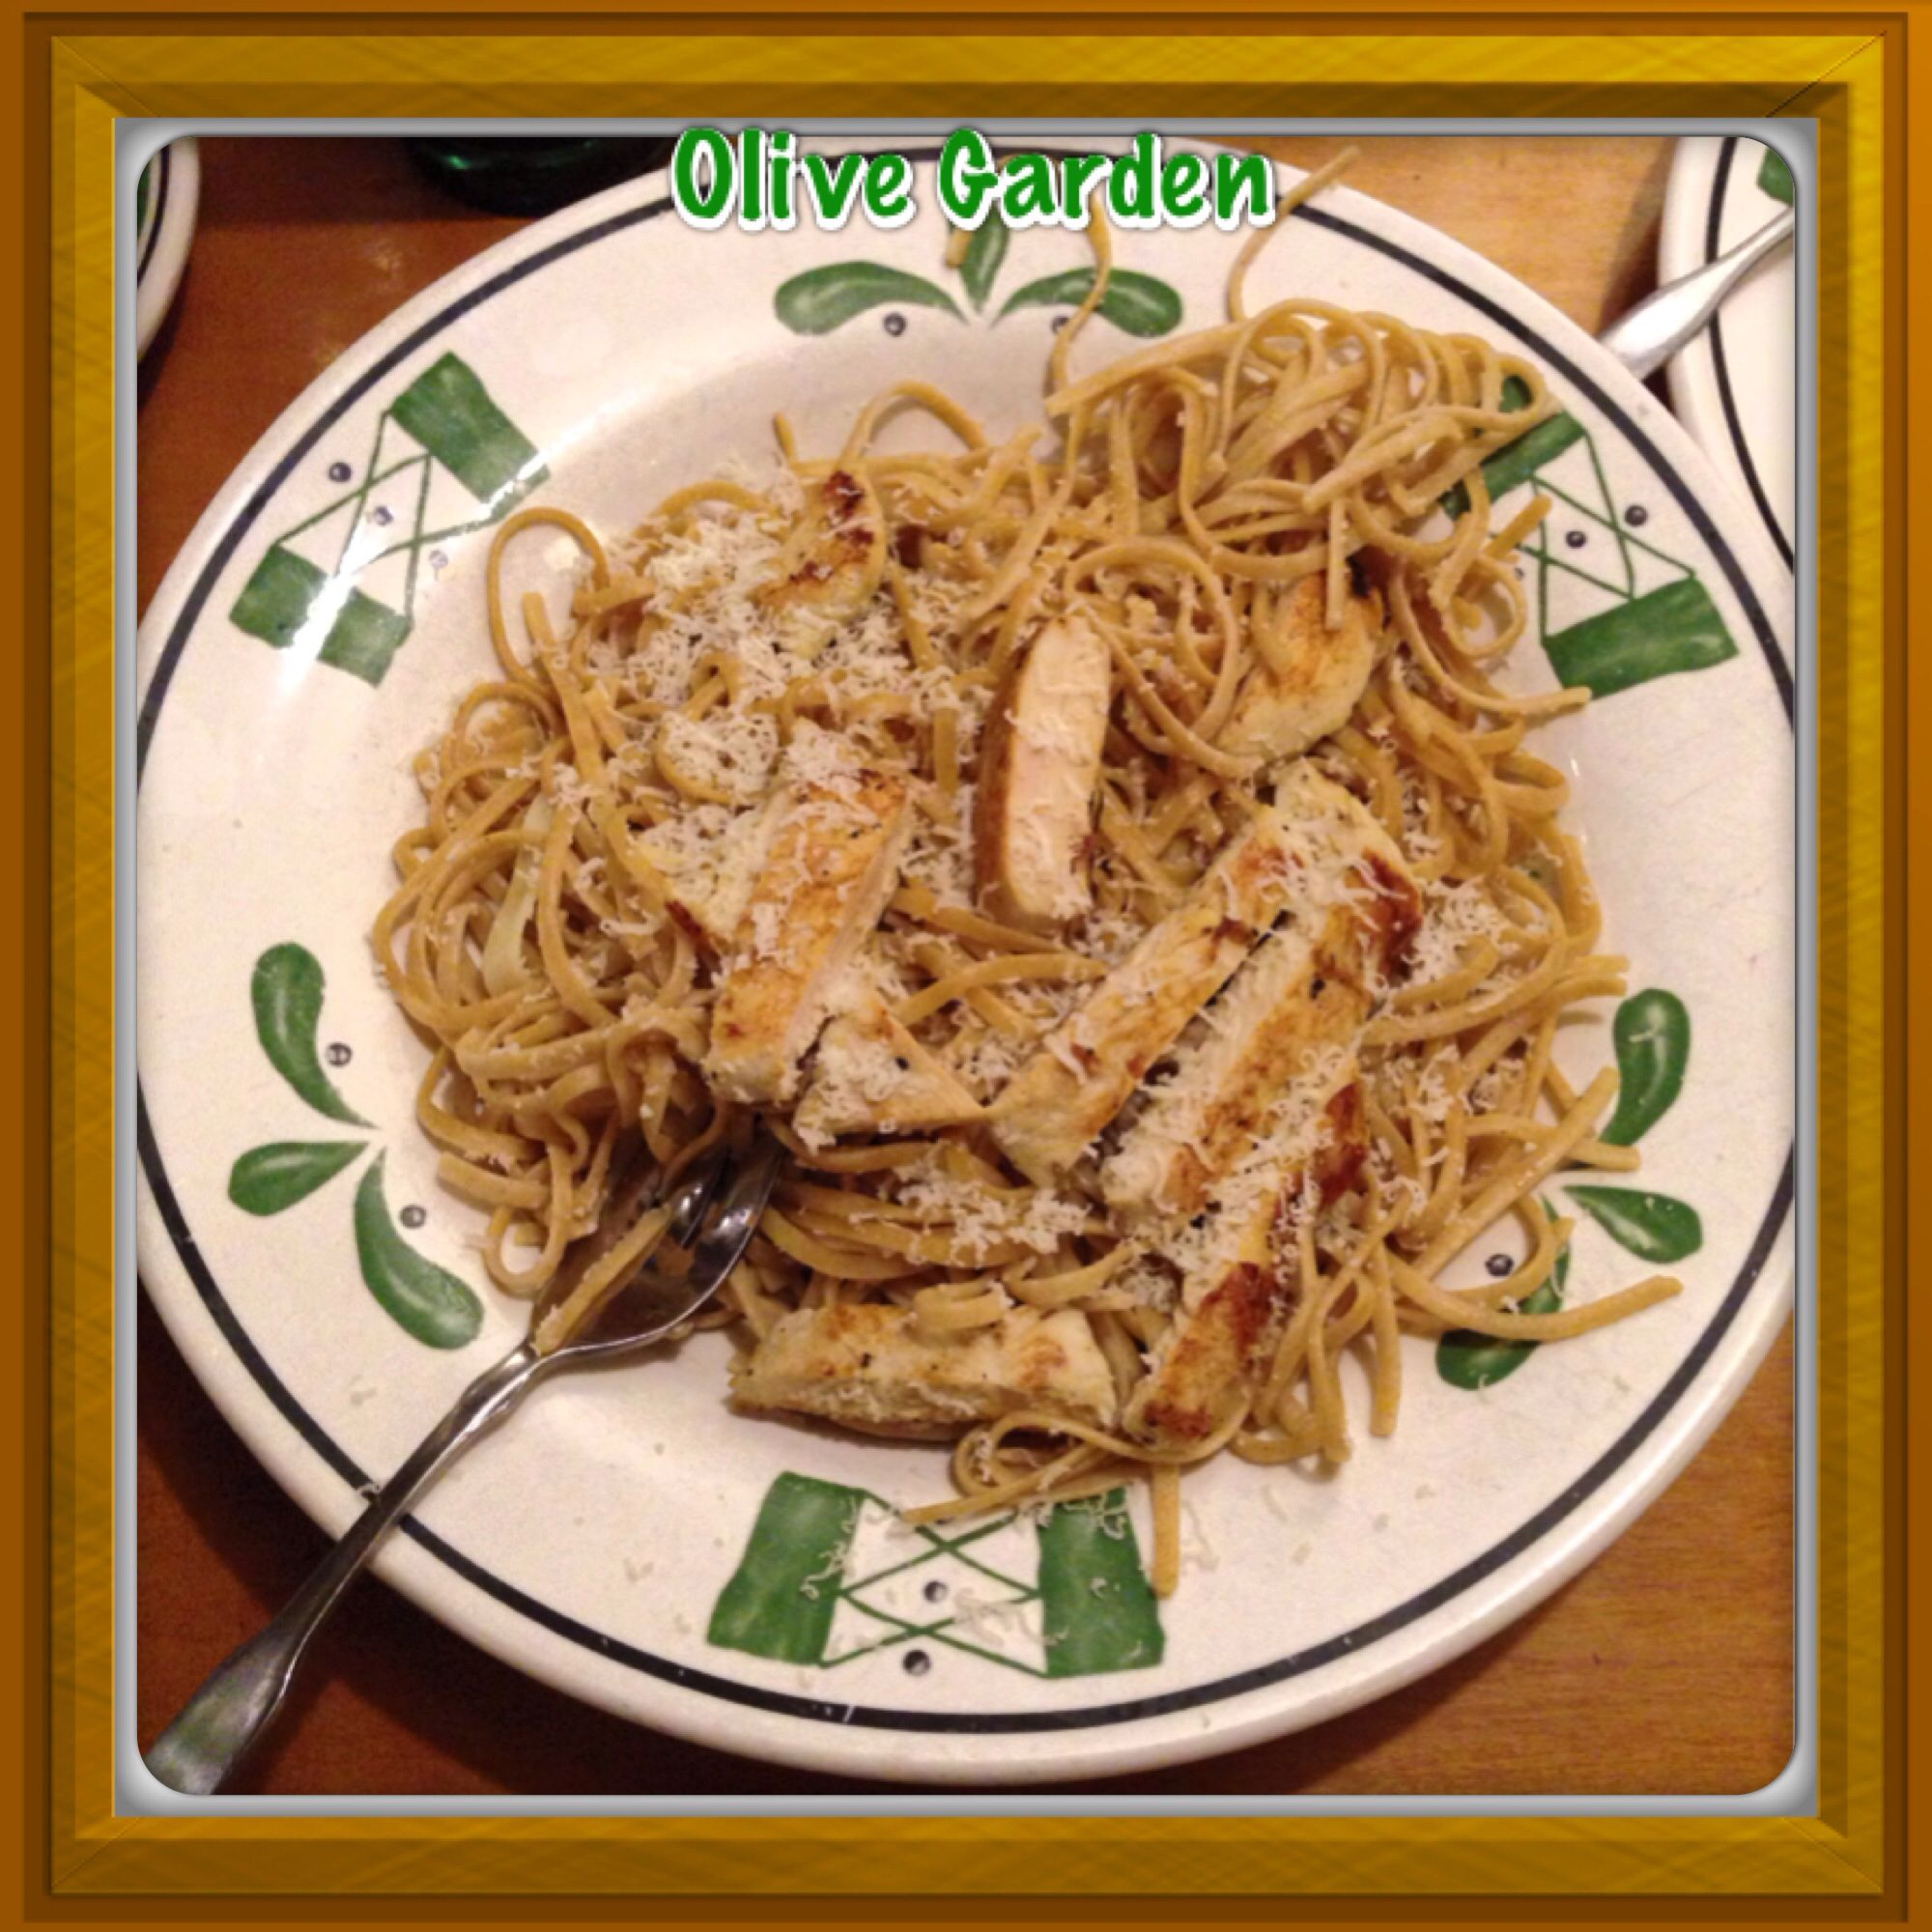 Did you know olive garden now offers whole wheat pasta as an option ...